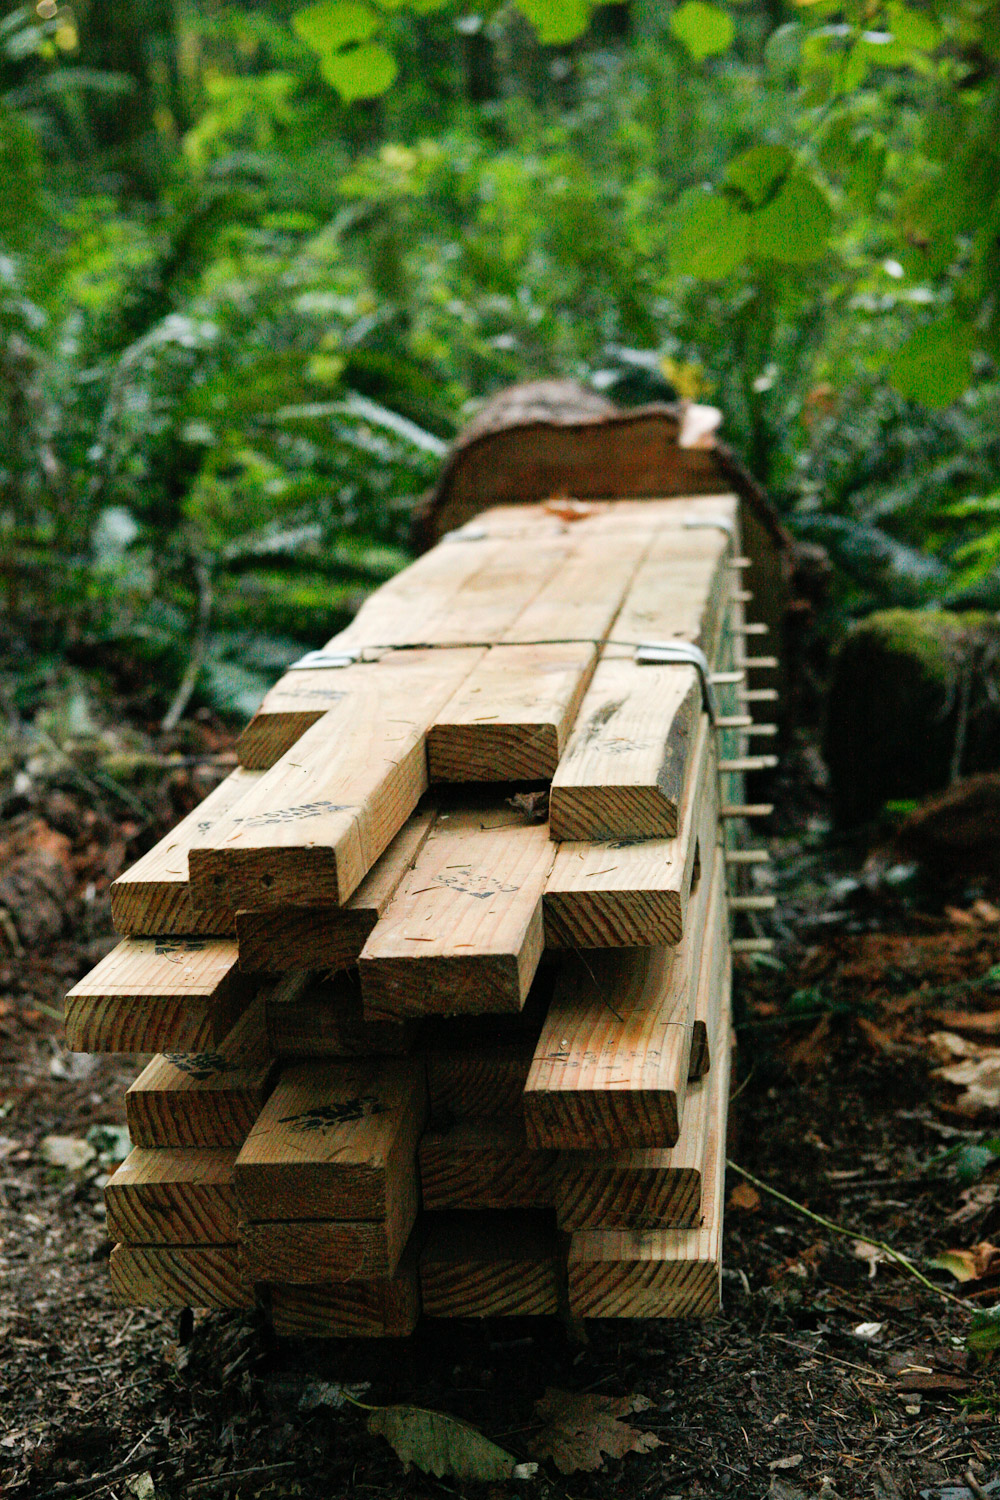 Lumber-Unit_The-Source-Series_imonen-8794.jpg